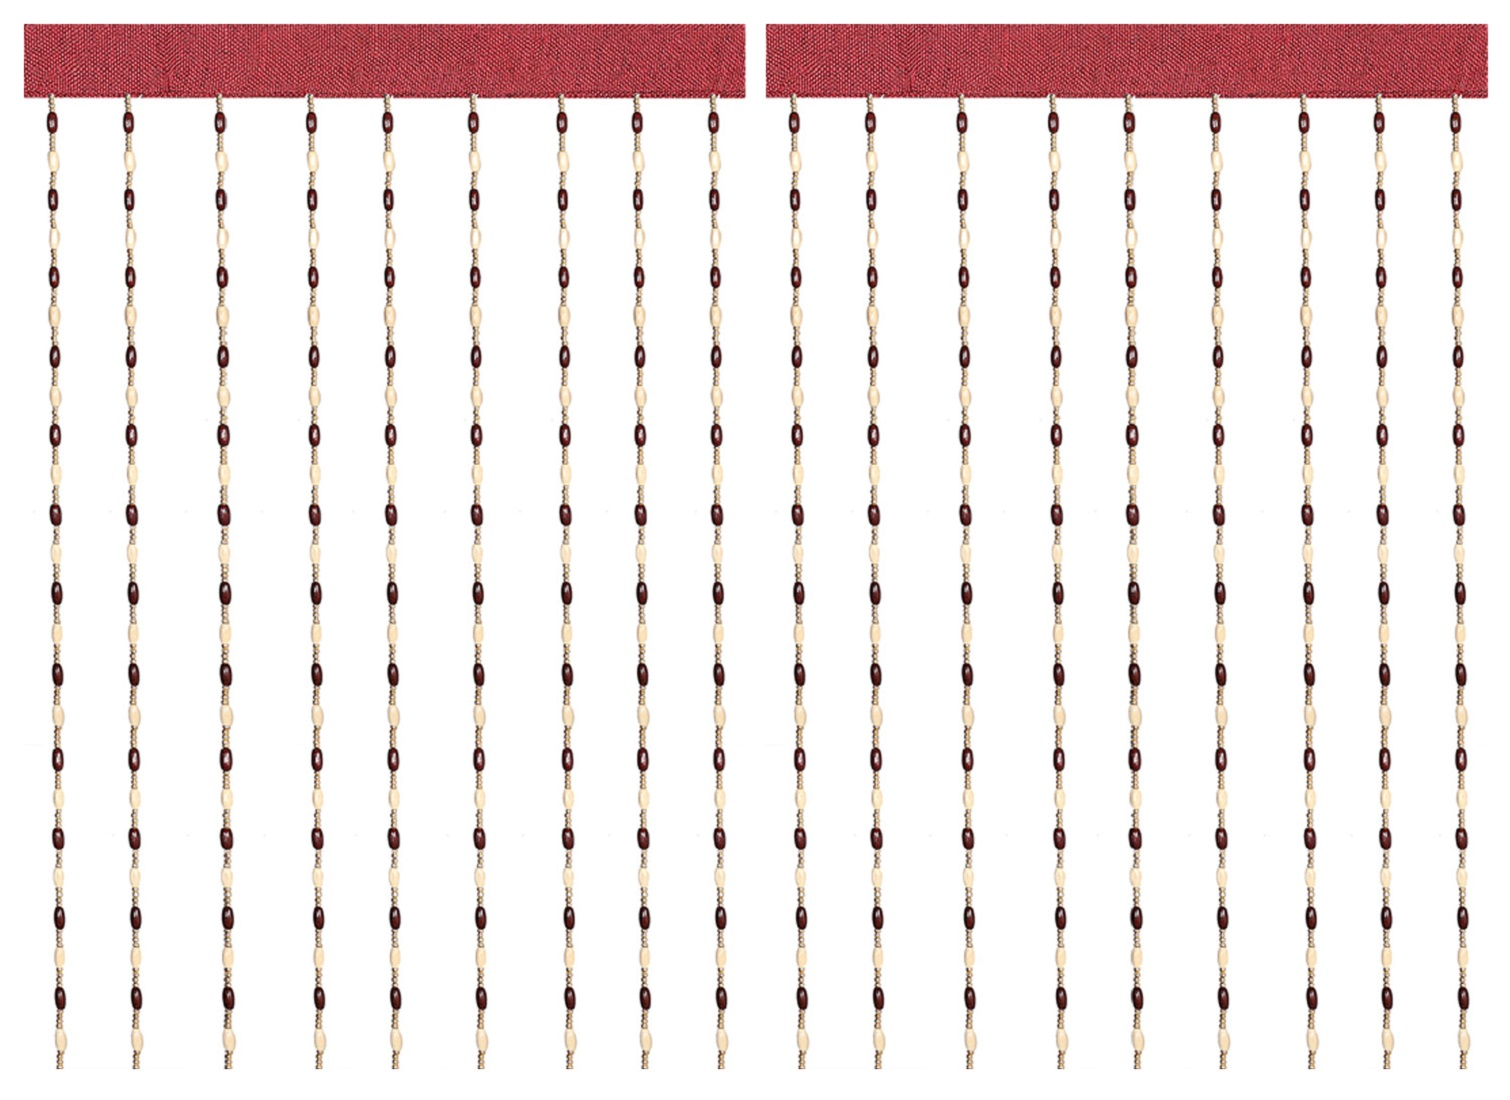 Kuber Industries Wooden 2 Pieces Sparkling Beaded String Shear Hanging Door Curtain 7 Feet (Maroon) -CTKTC13024